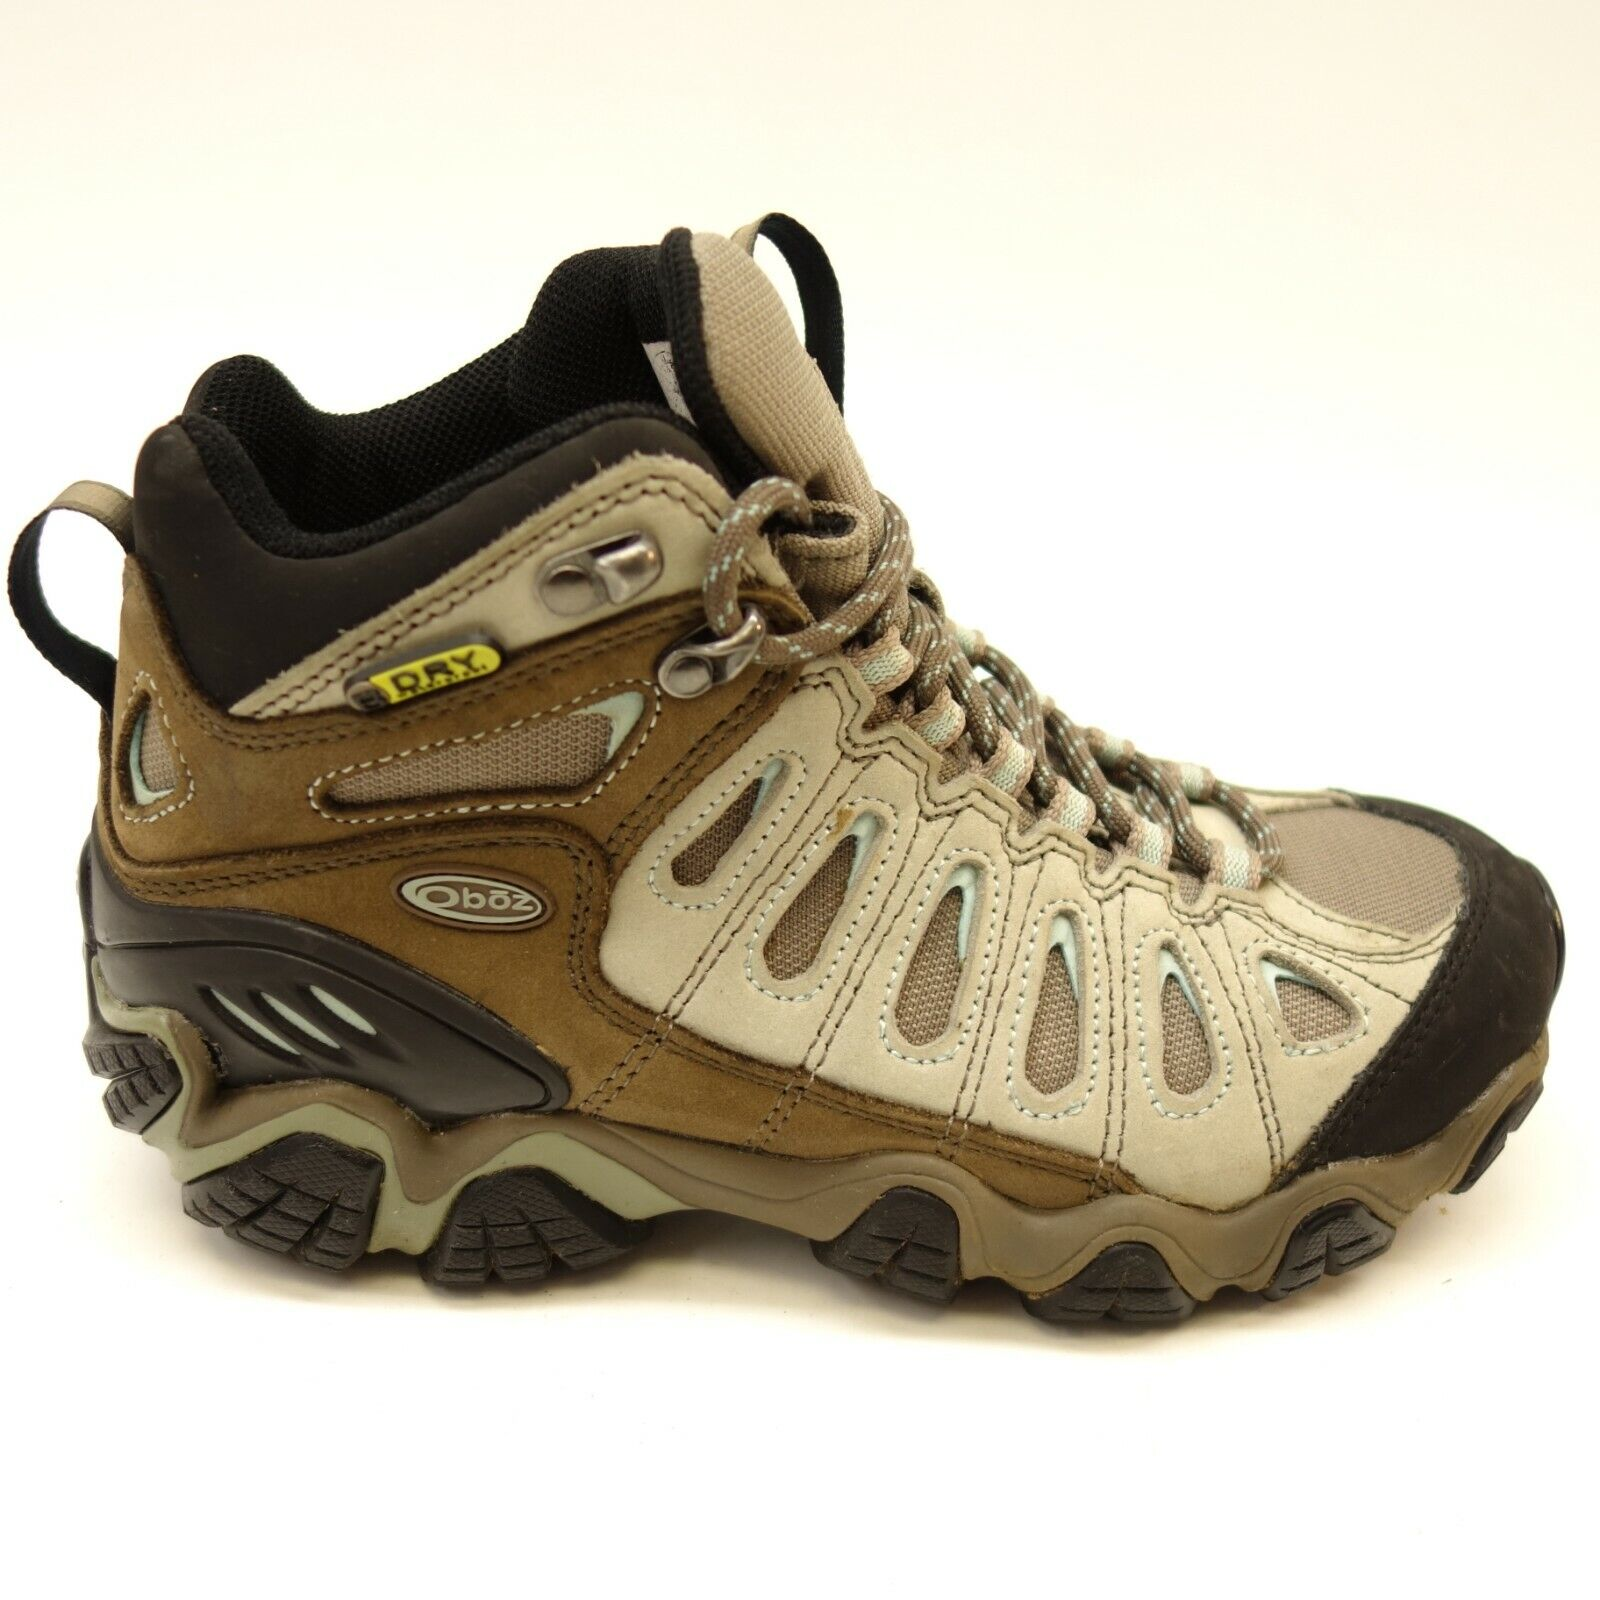 Oboz Womens Sawtooth Mid Athletic Support Hiking Trail Athletic shoes Sz 6.5